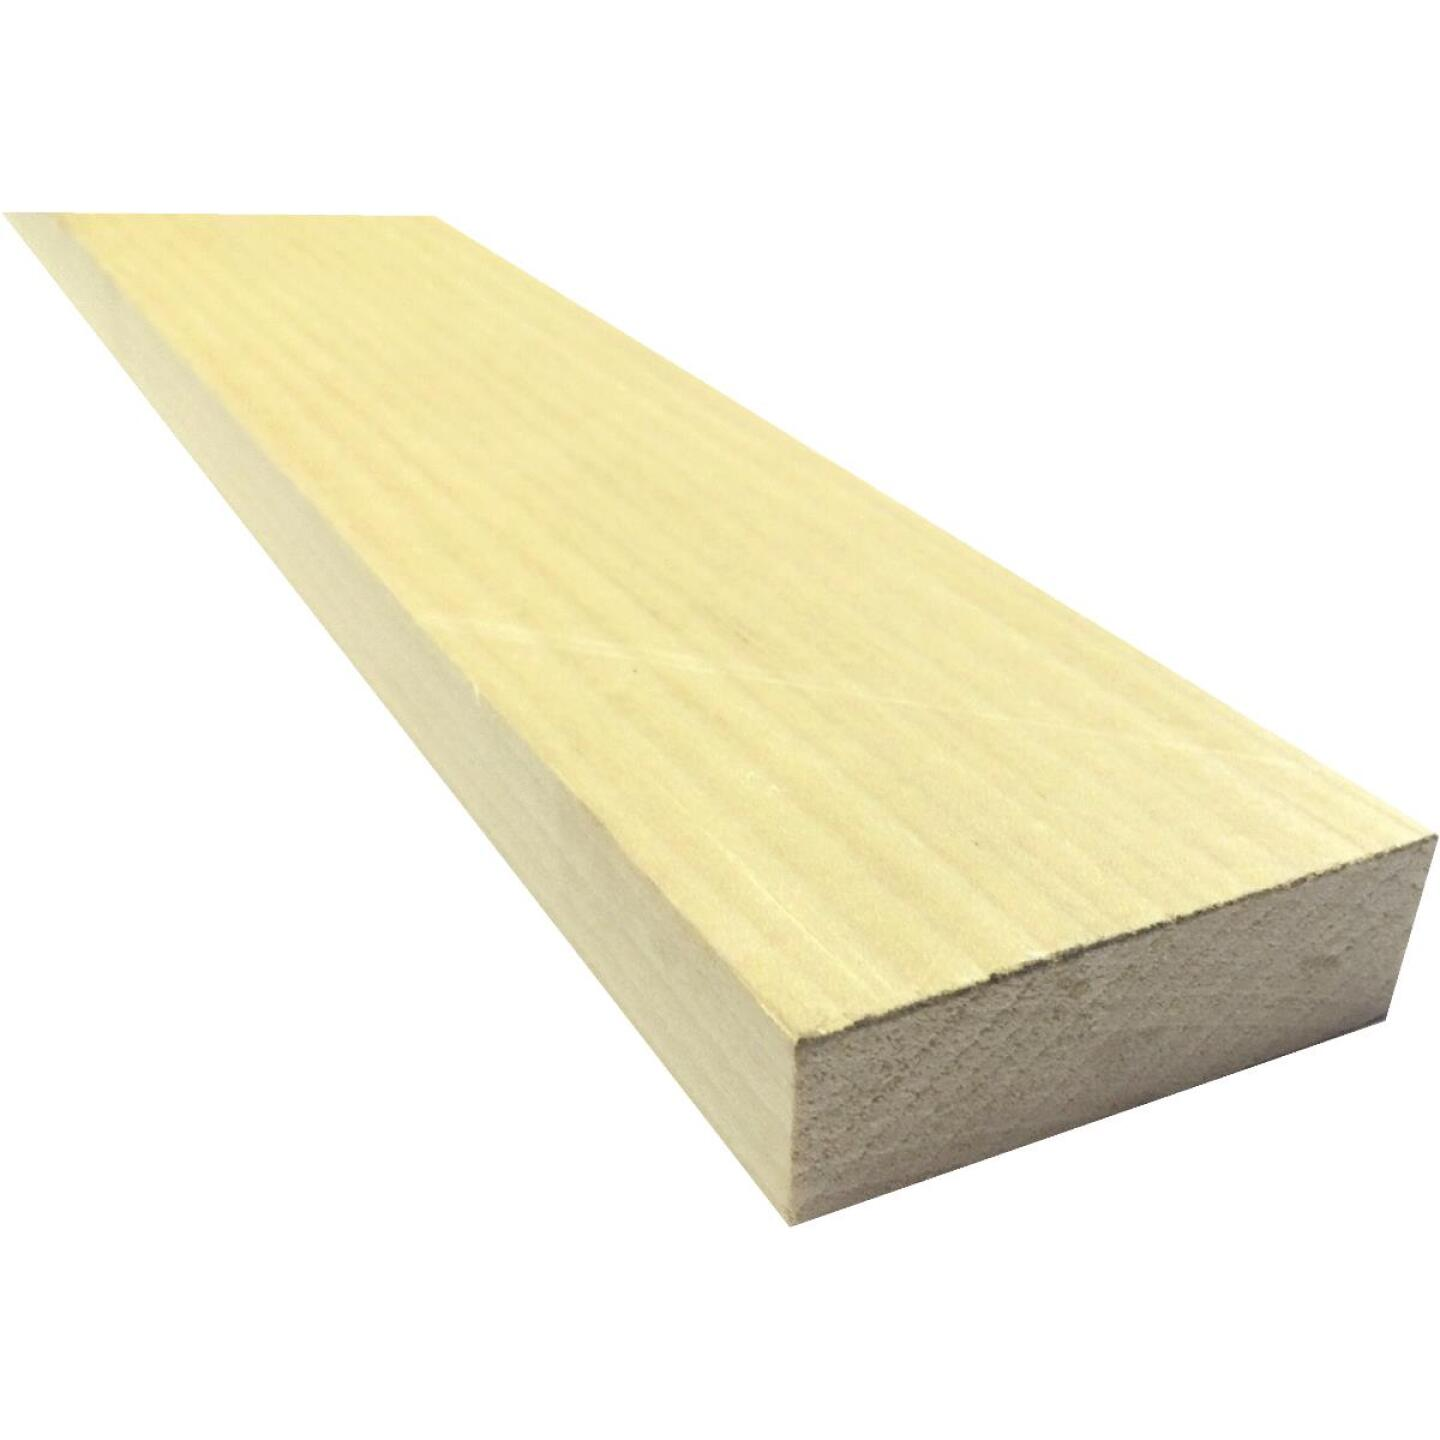 Waddell 1 In. x 3 In. x 6 Ft. Poplar Wood Board Image 1